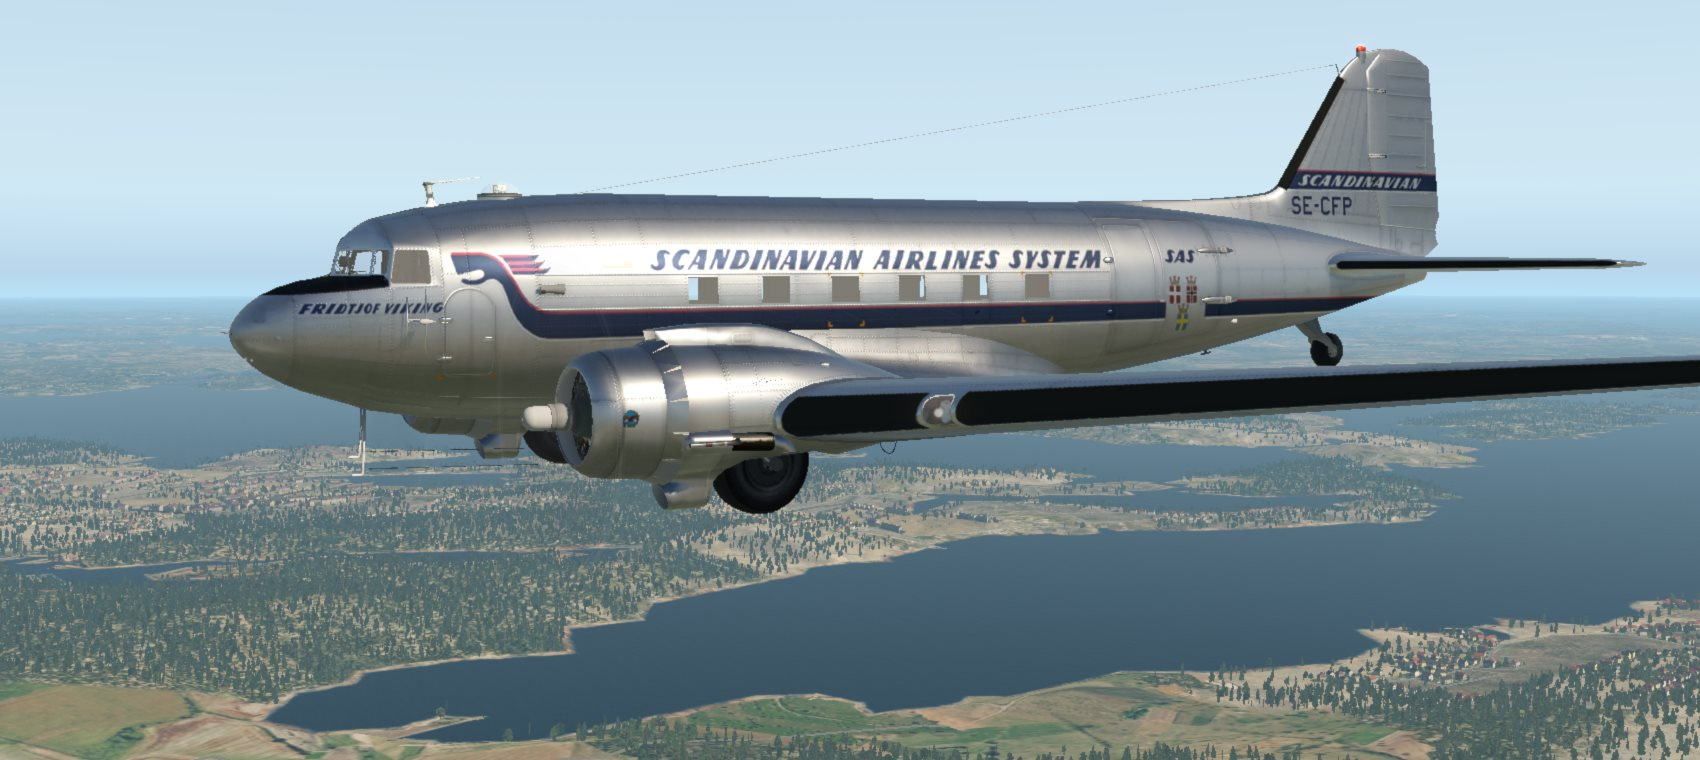 Xp11 Aircraft Download